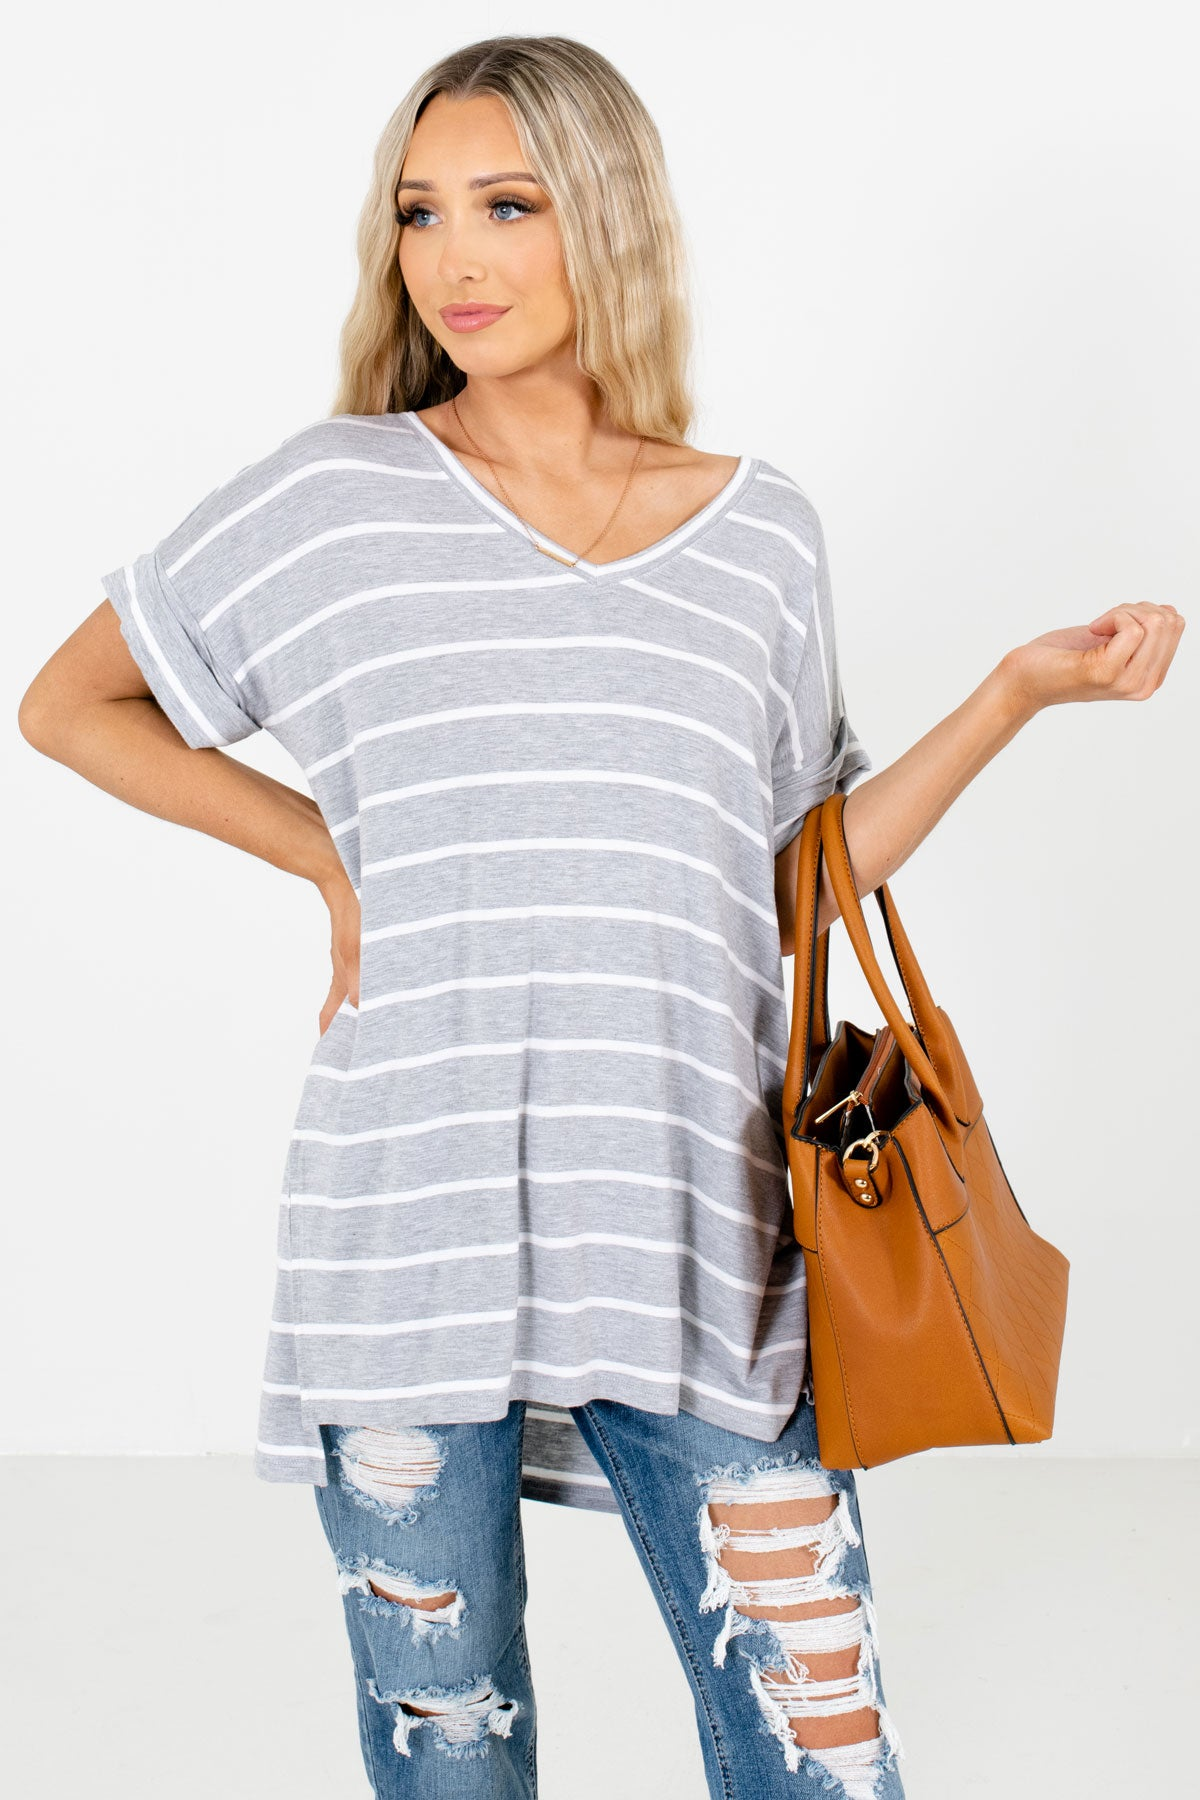 Heather Gray and White Striped Boutique Tops for Women